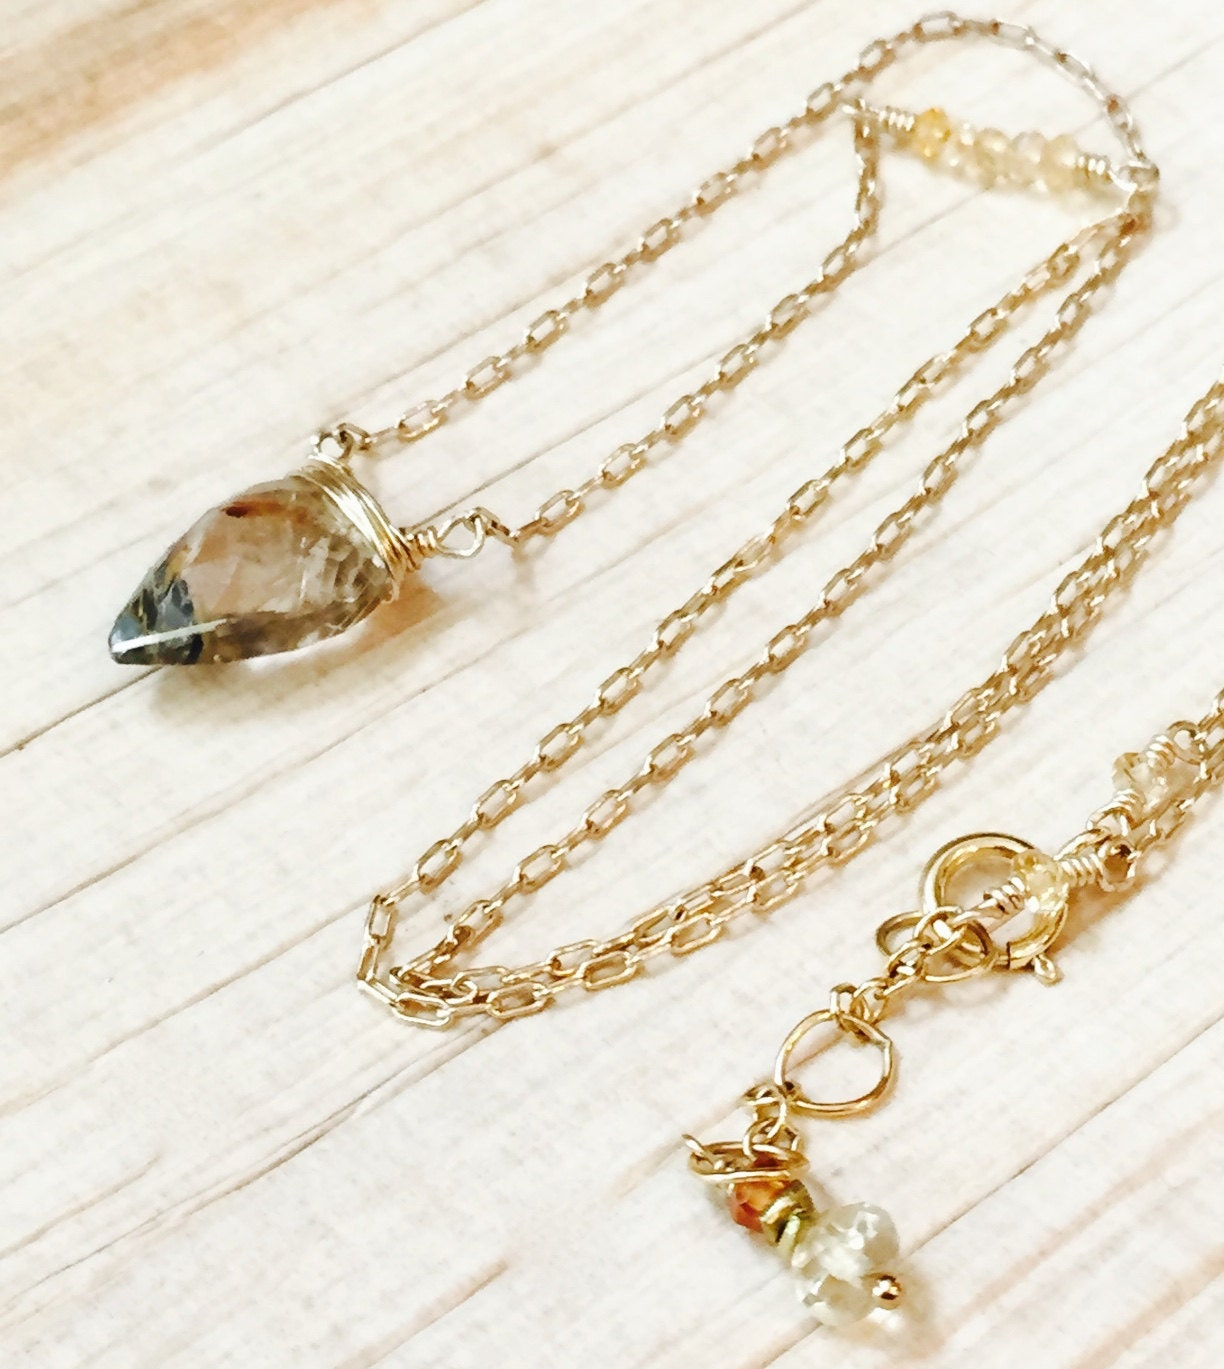 Golden rutilated quartz necklace arrowhead pendant for Golden rutilated quartz jewelry